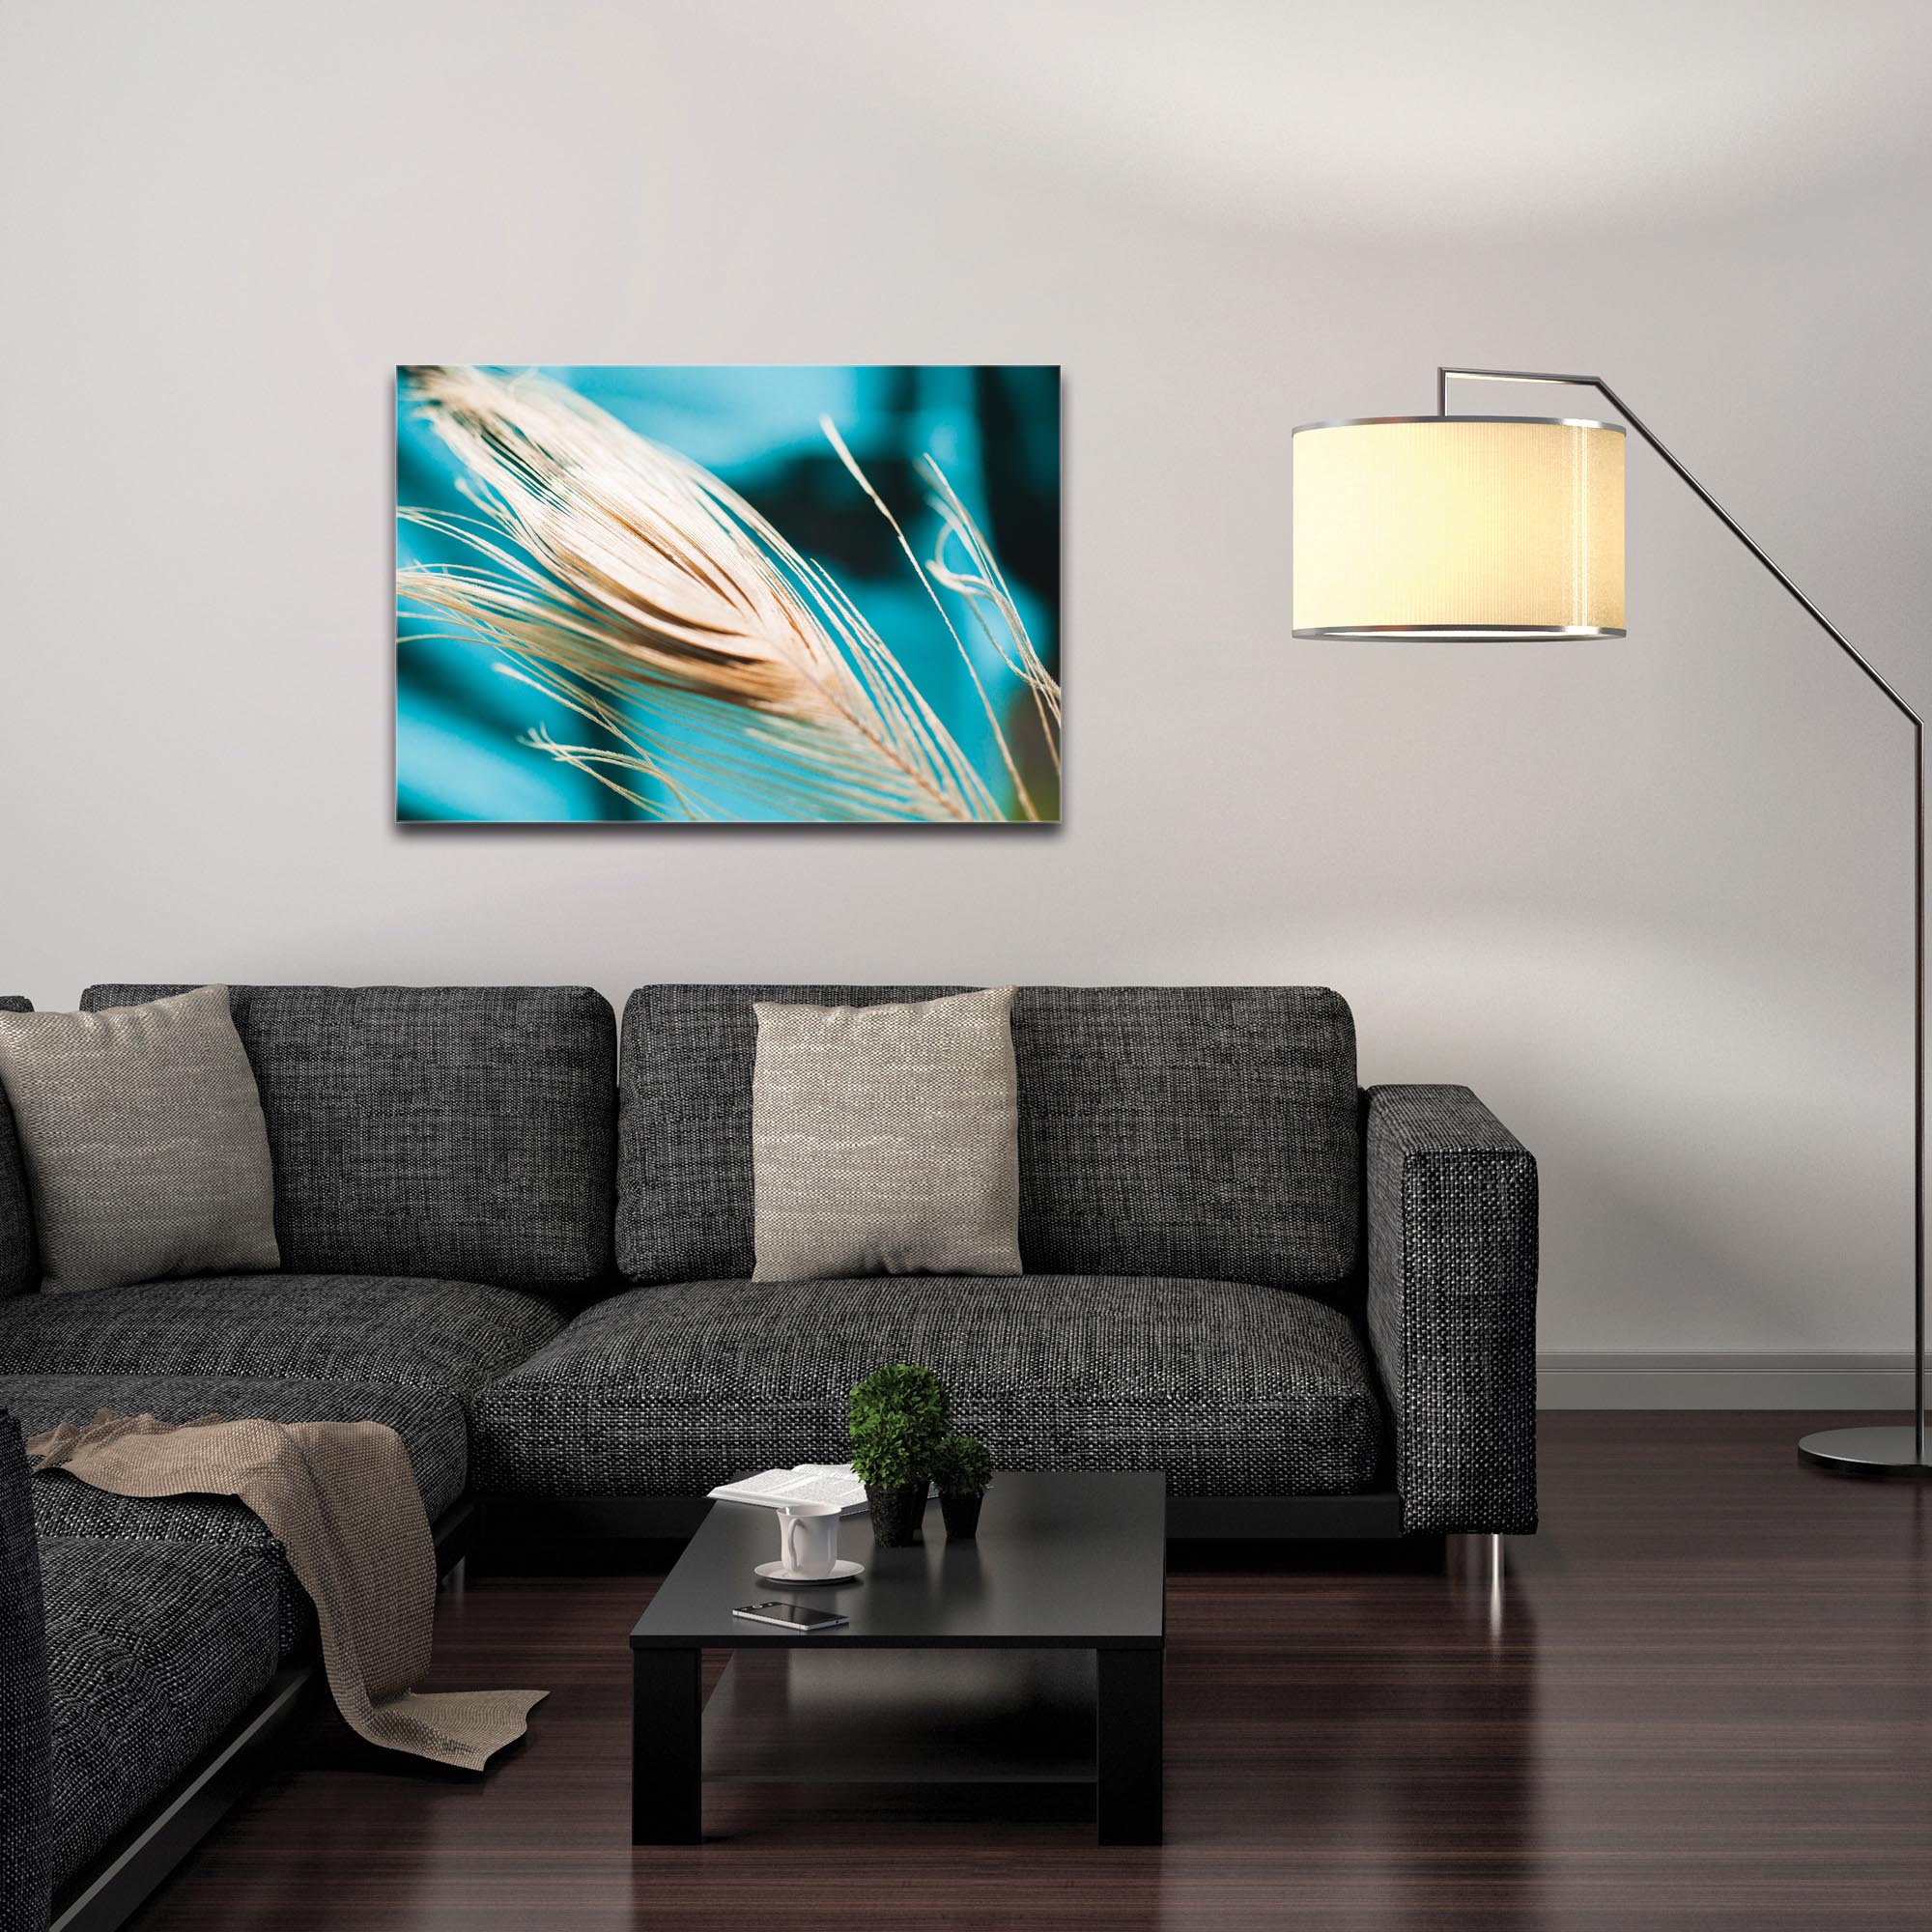 Nature Photography 'Turqoise Feather' - Bird Feathers Art on Metal or Plexiglass - Image 3